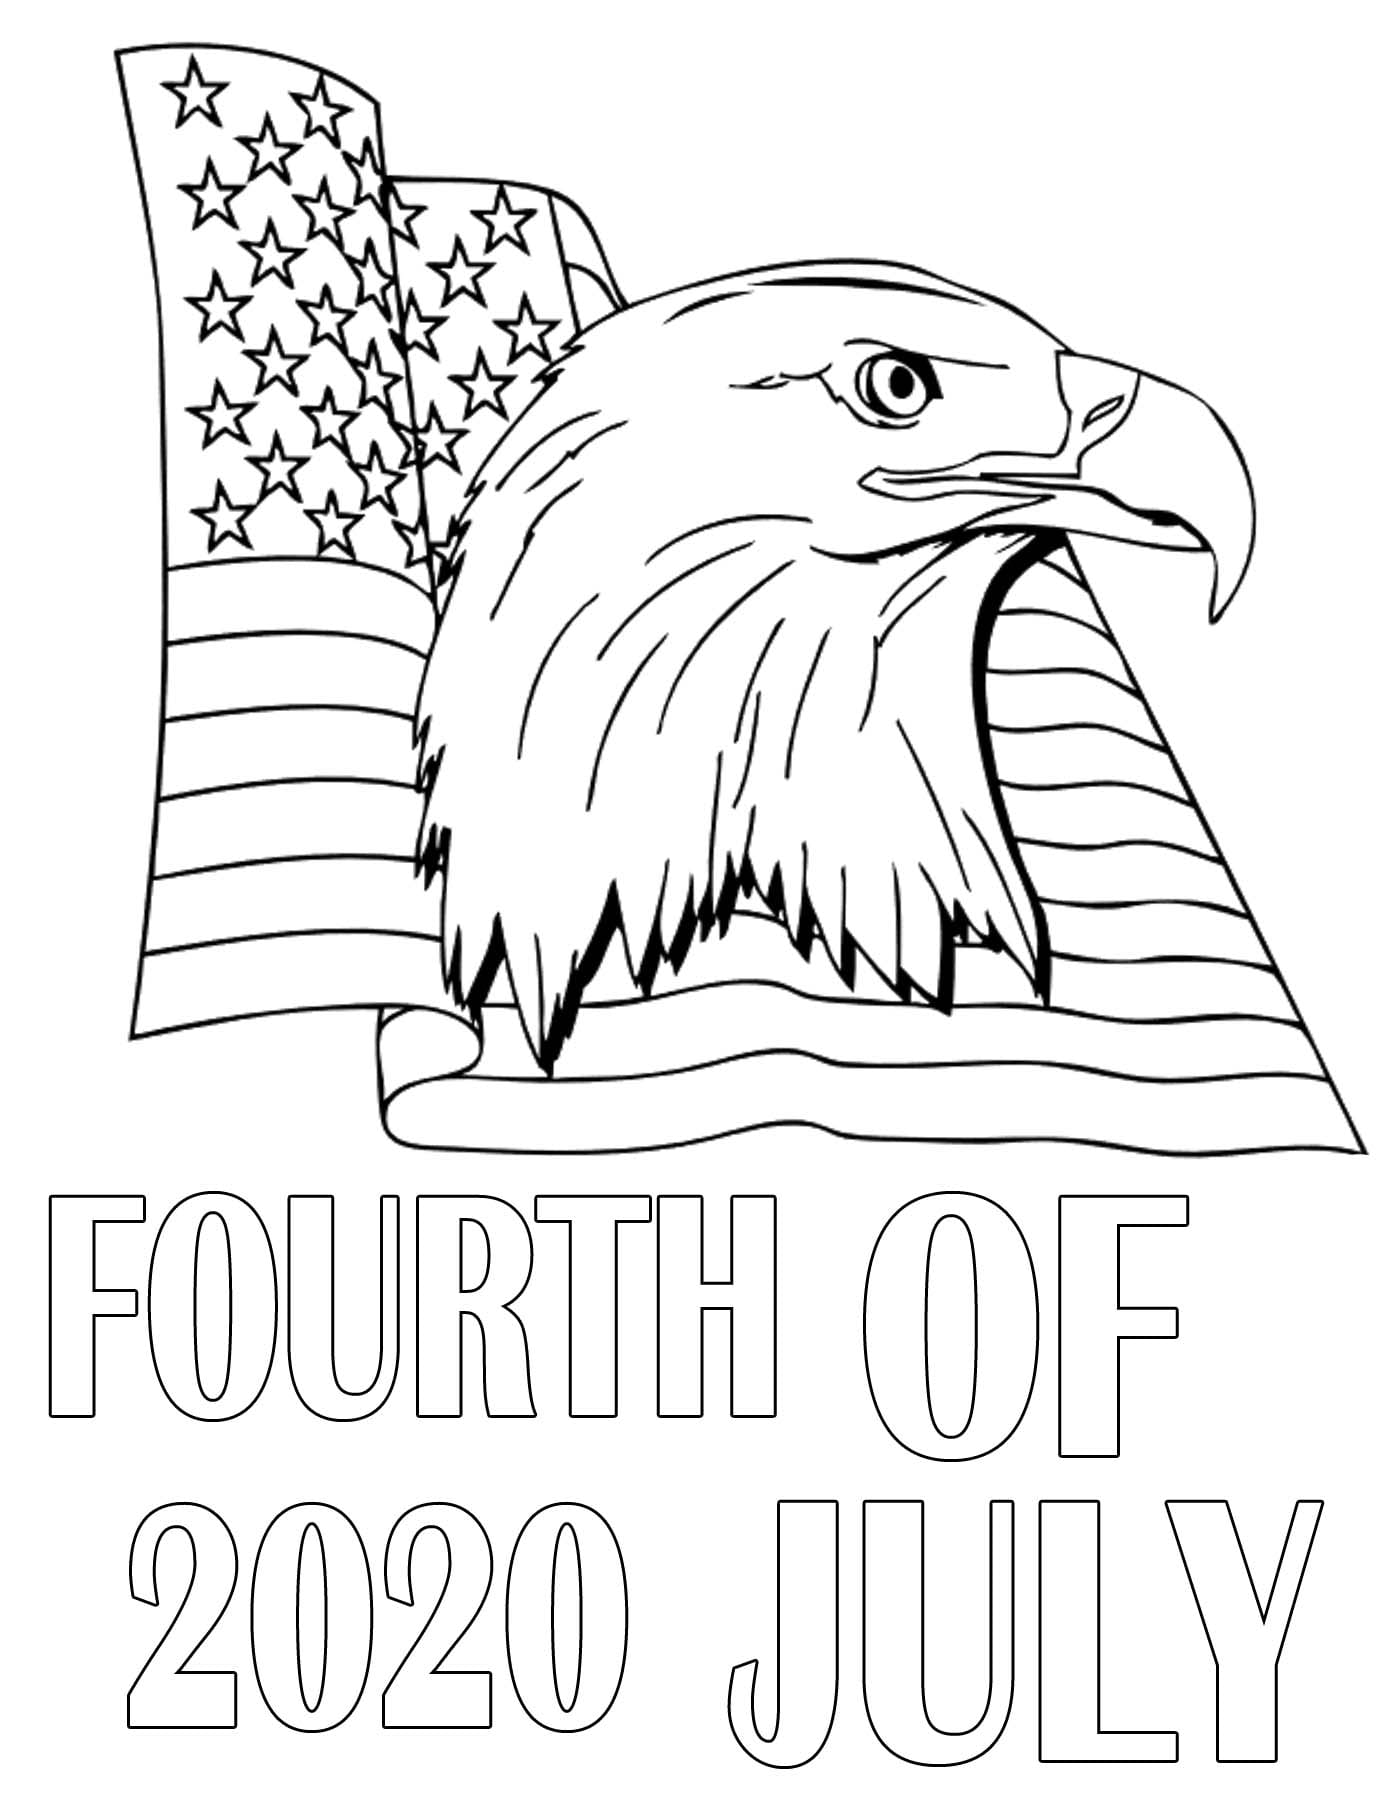 coloring book day 2020 coloring girl pages soldier 2020 coloring pages for coloring 2020 day book